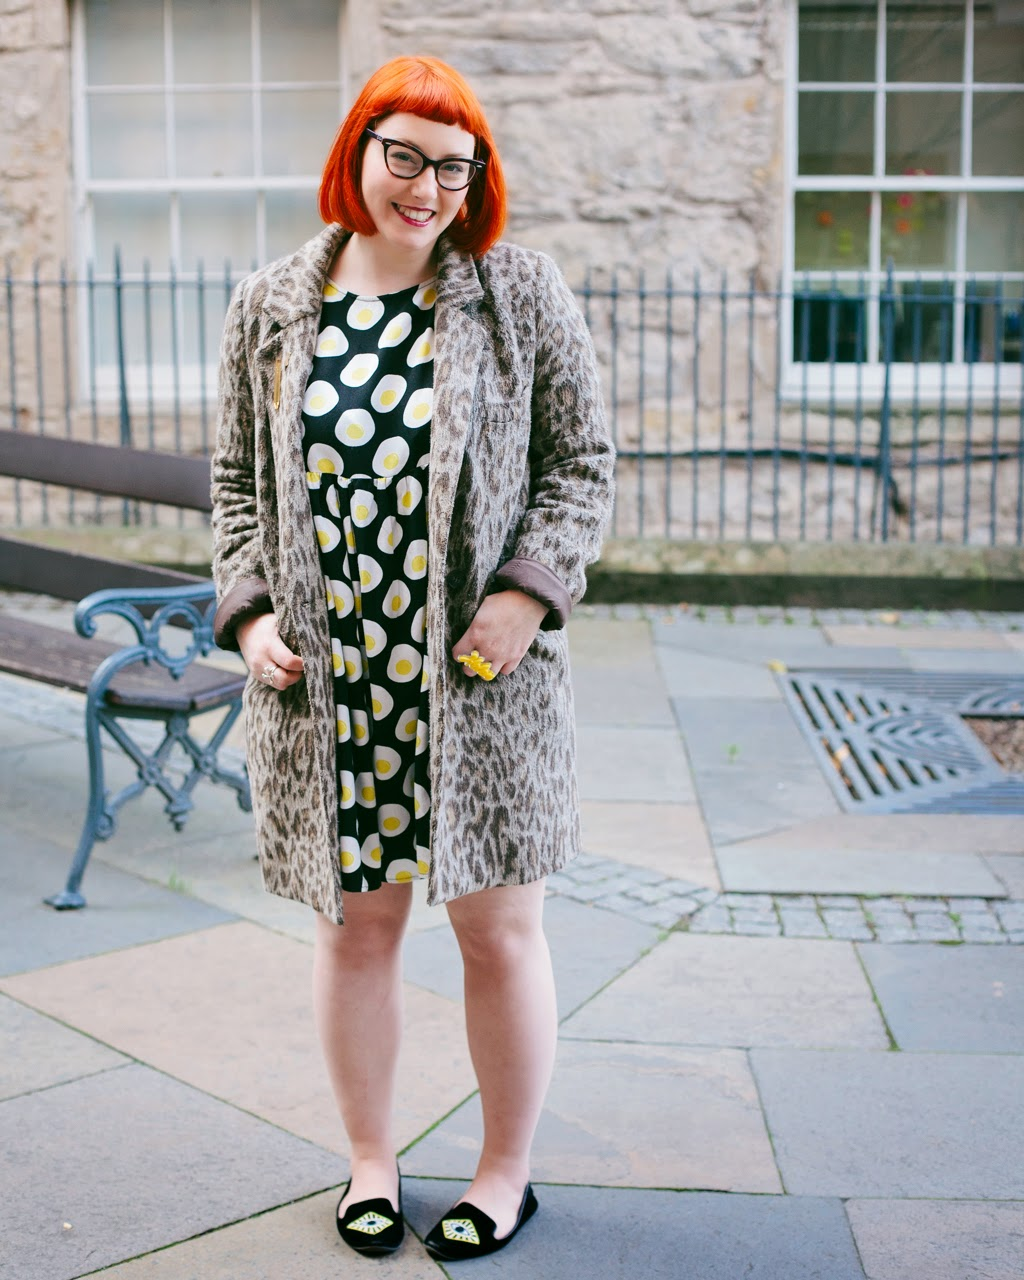 Edinburgh Blogger, Scottish Blogger, Mint and Chillies, Ginger, Red Head, cat eye glasses, The Whitepepper egg dress, leopard print, Edinburgh, Edinburgh Blogger Project